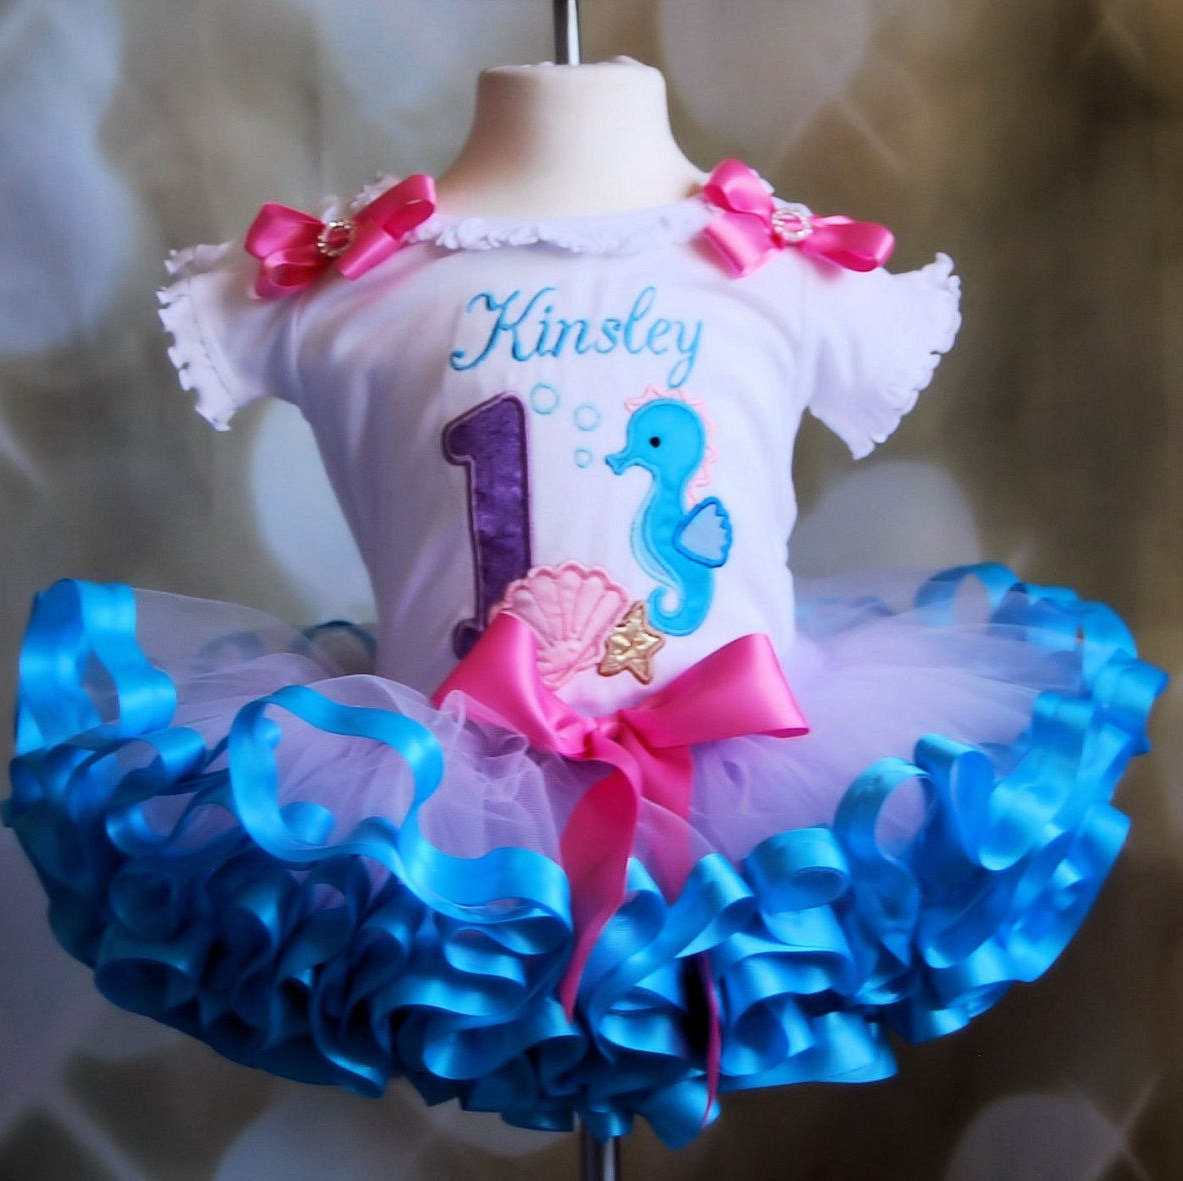 under the sea 1st birthday outfit, first birthday tutu outfit,  ribbon trim birthday outfit, cake smash outfit girl, nautical birthday tutu